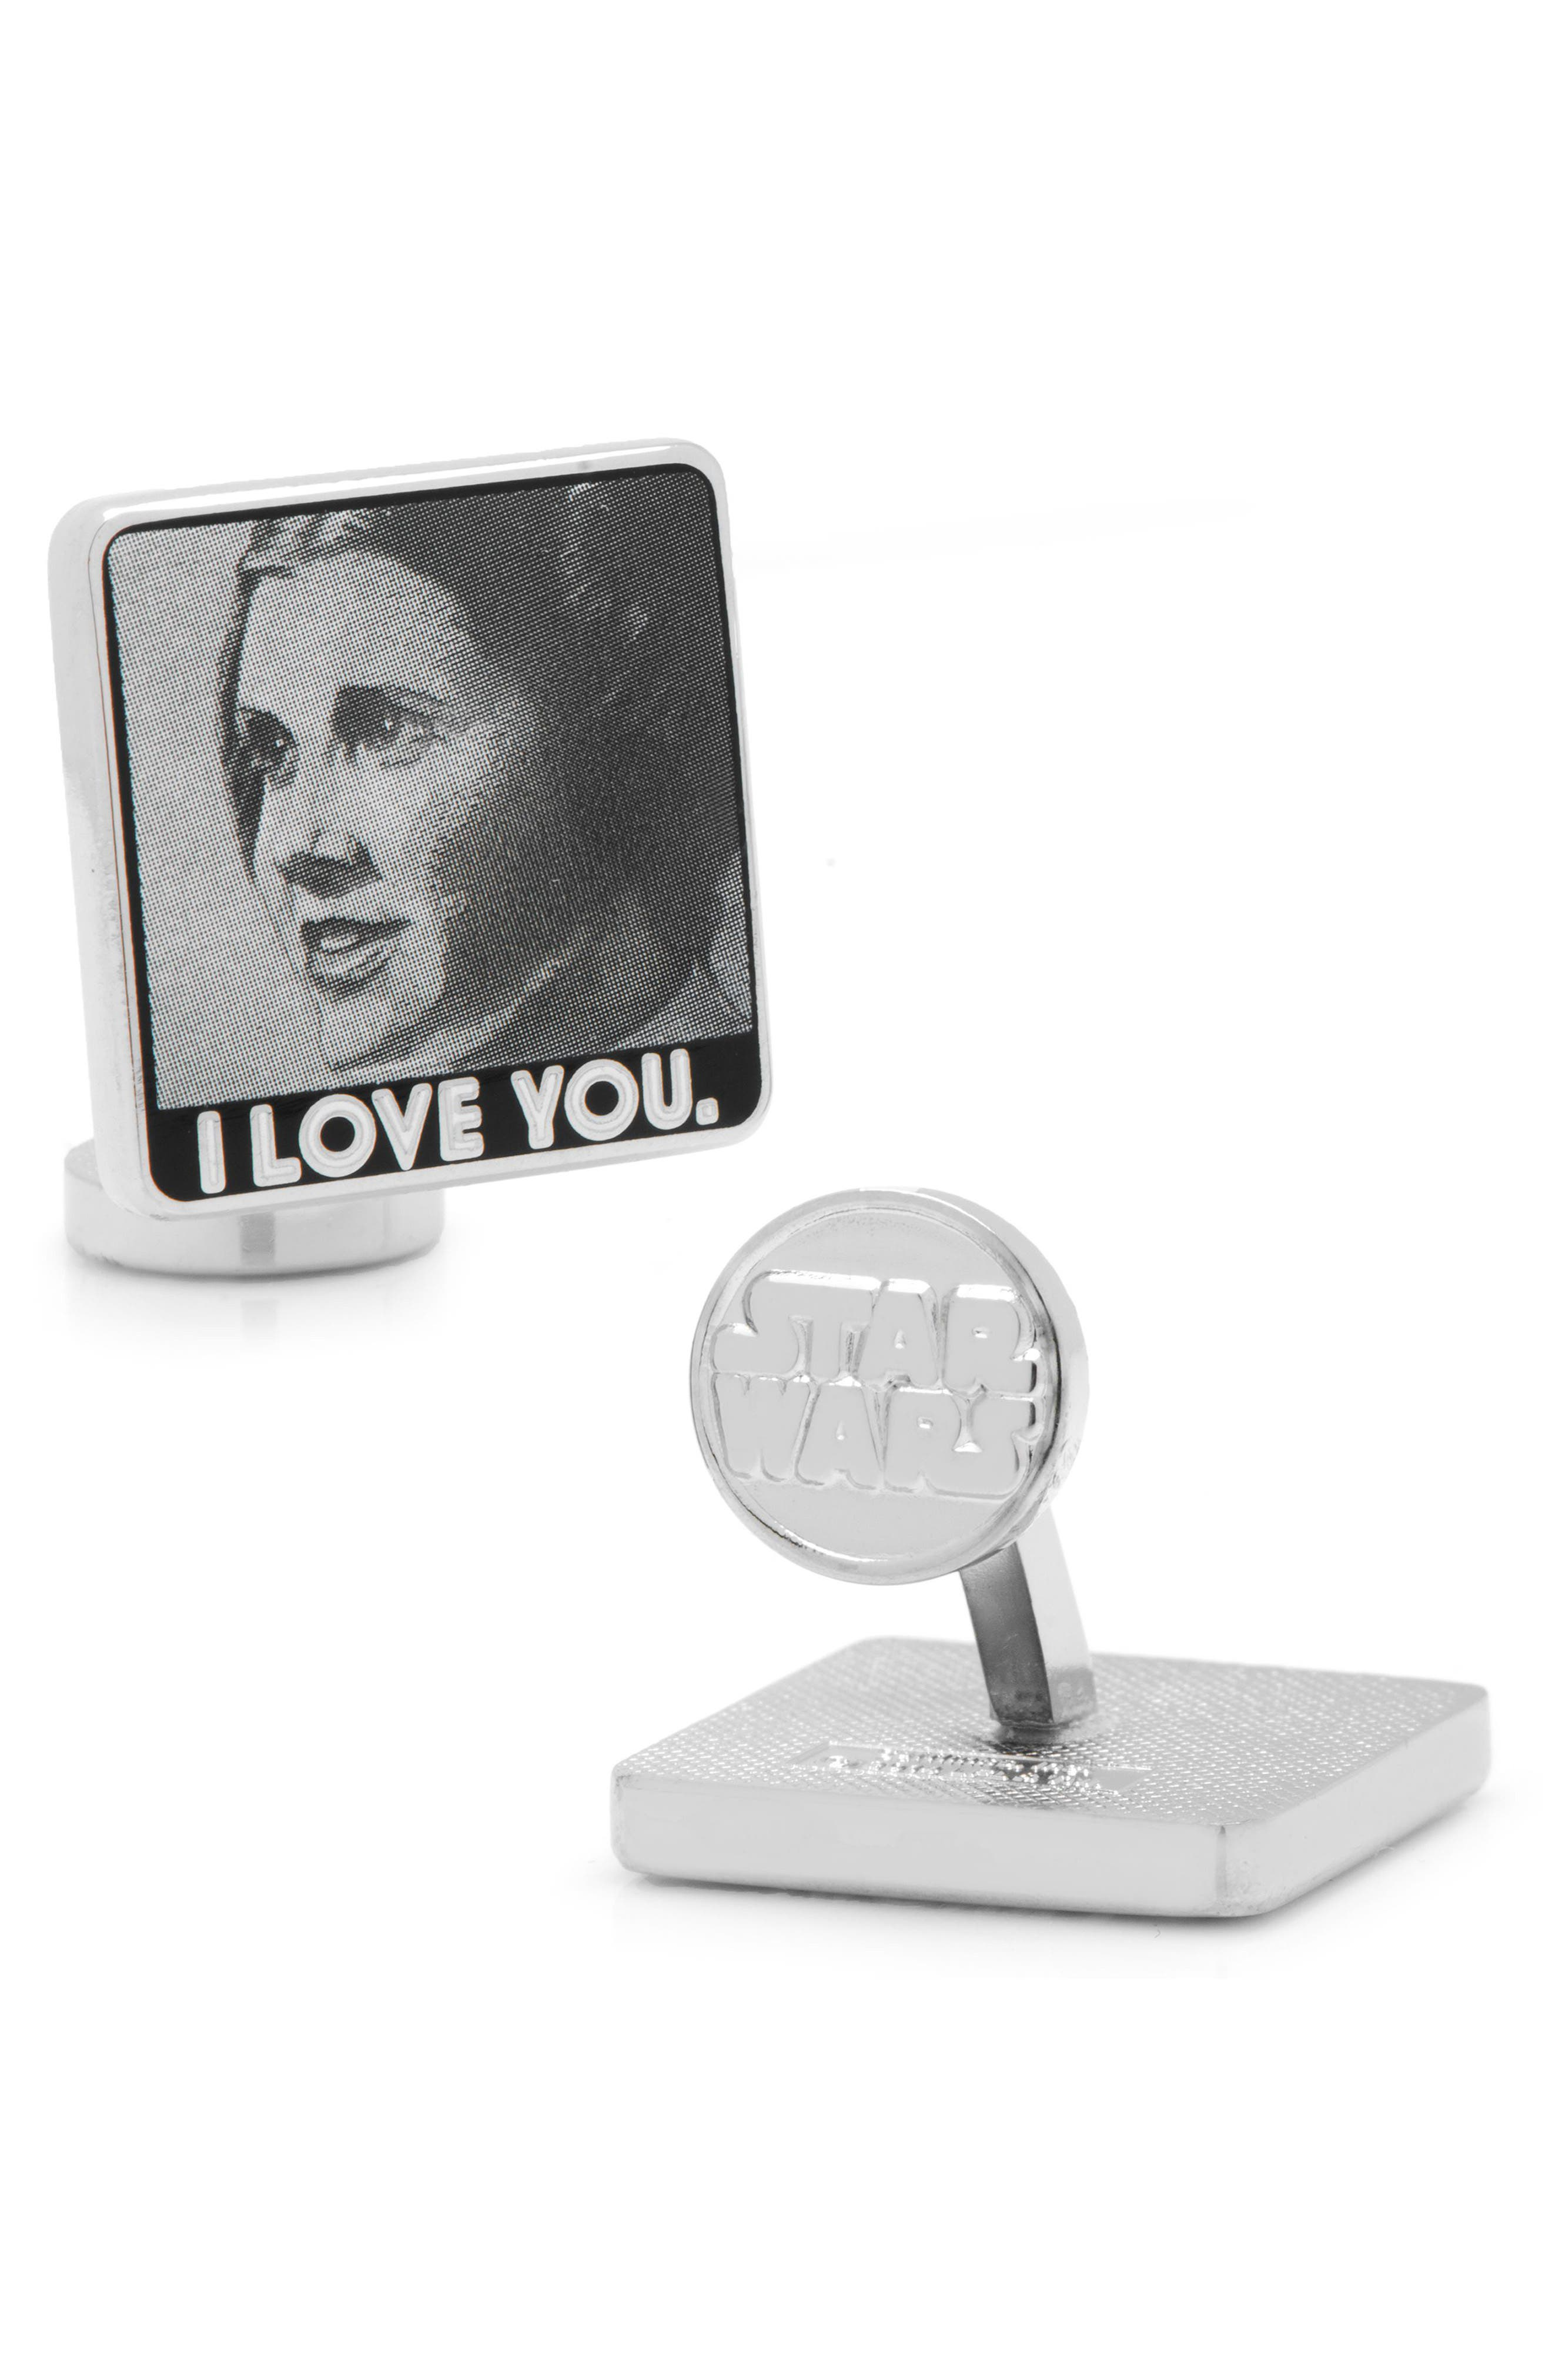 I Love You/I Know Cuff Links,                             Alternate thumbnail 2, color,                             Grey/ White